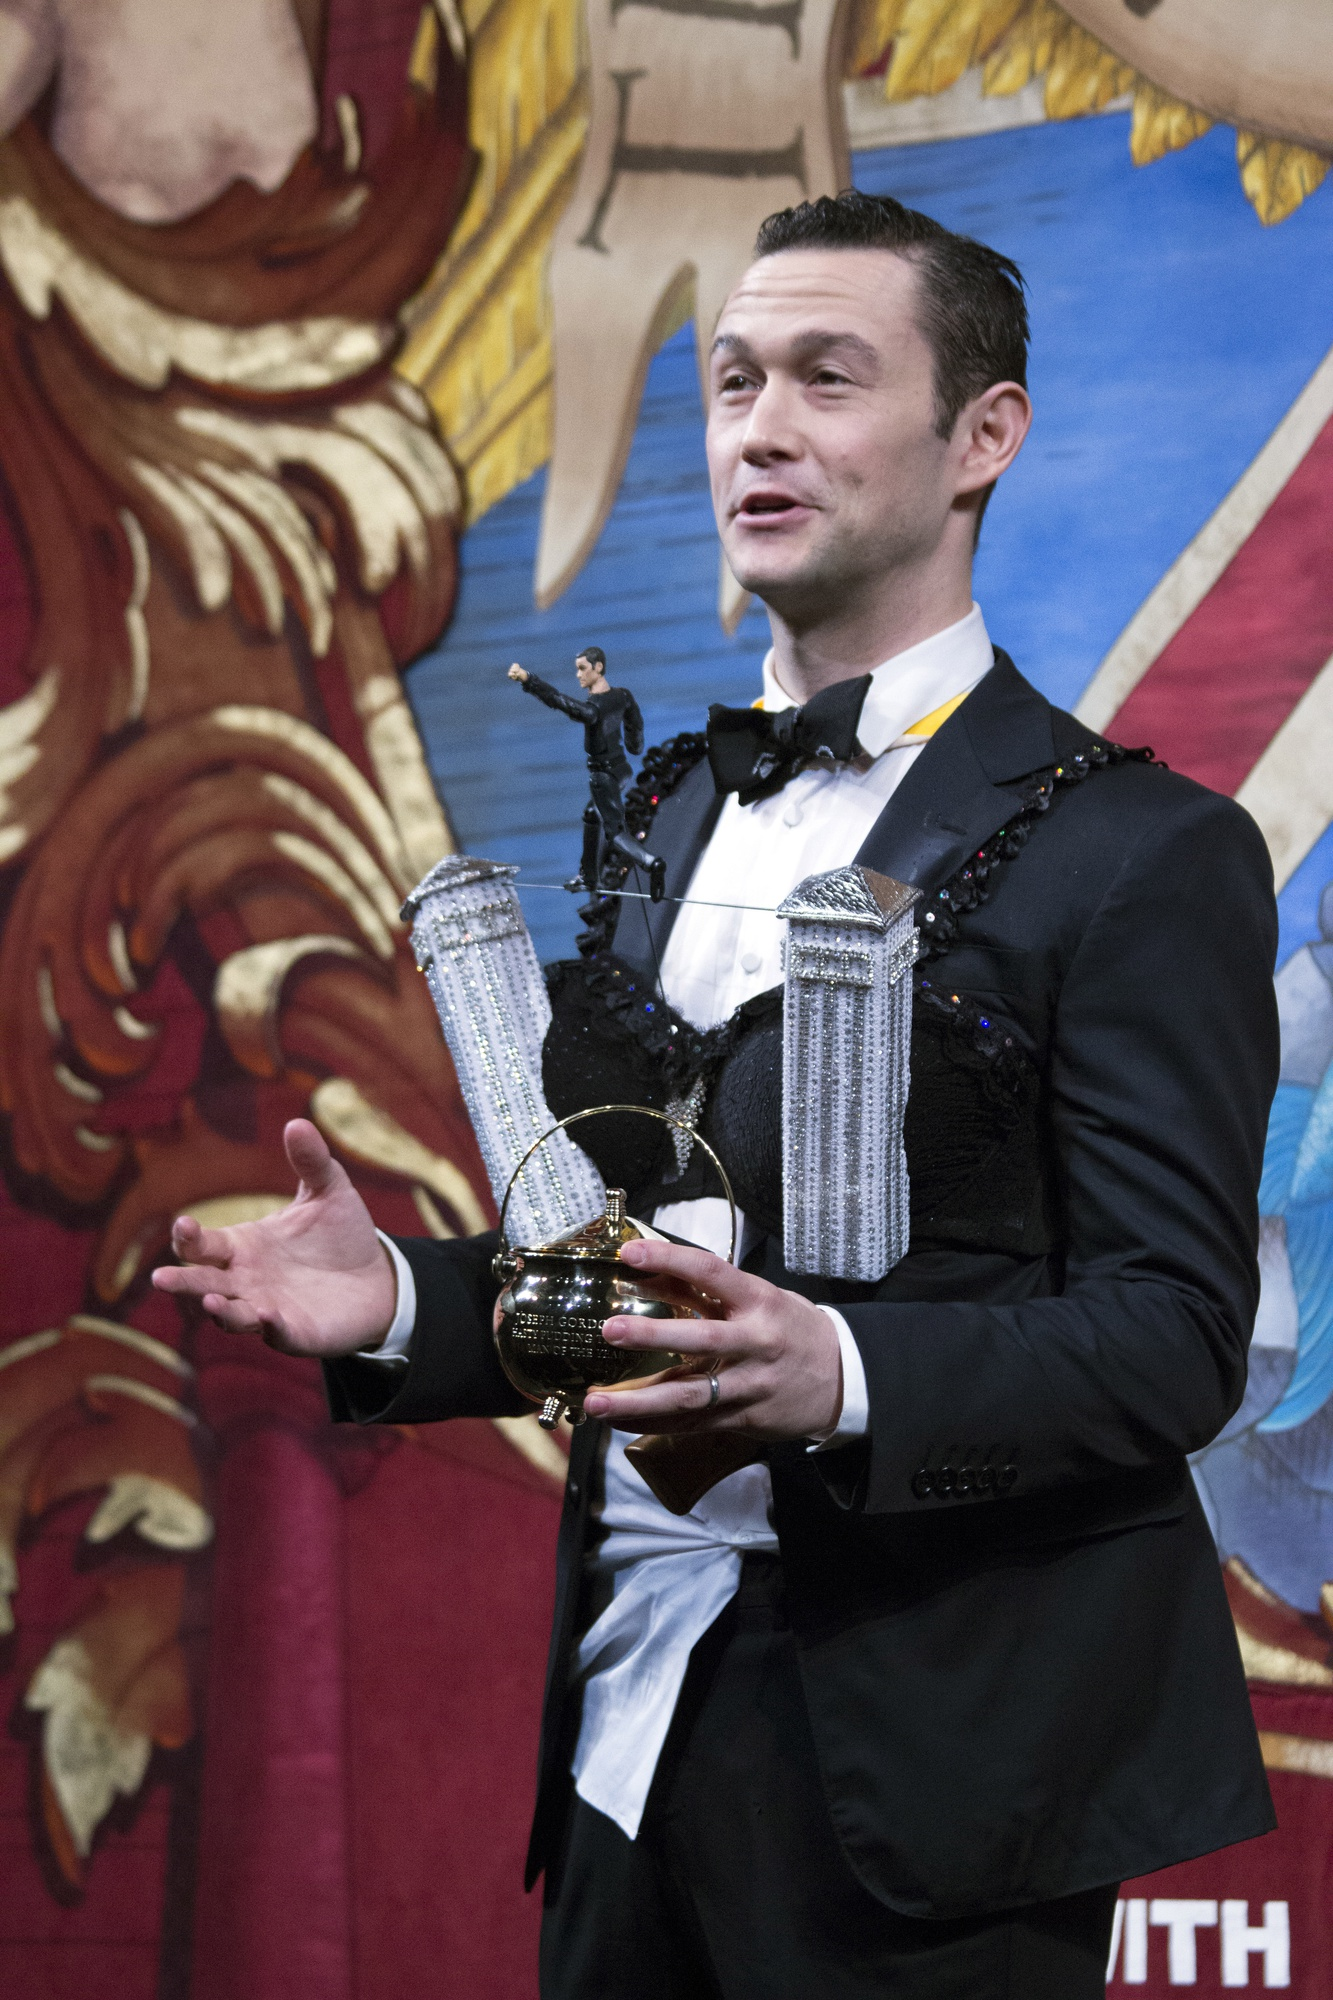 After receiving the fiftieth Man of the Year award from the Hasty Pudding Theatricals Friday night, actor Joseph Gordon-Levitt offers optimistic closing remarks about the character of Ivy League undergraduates.